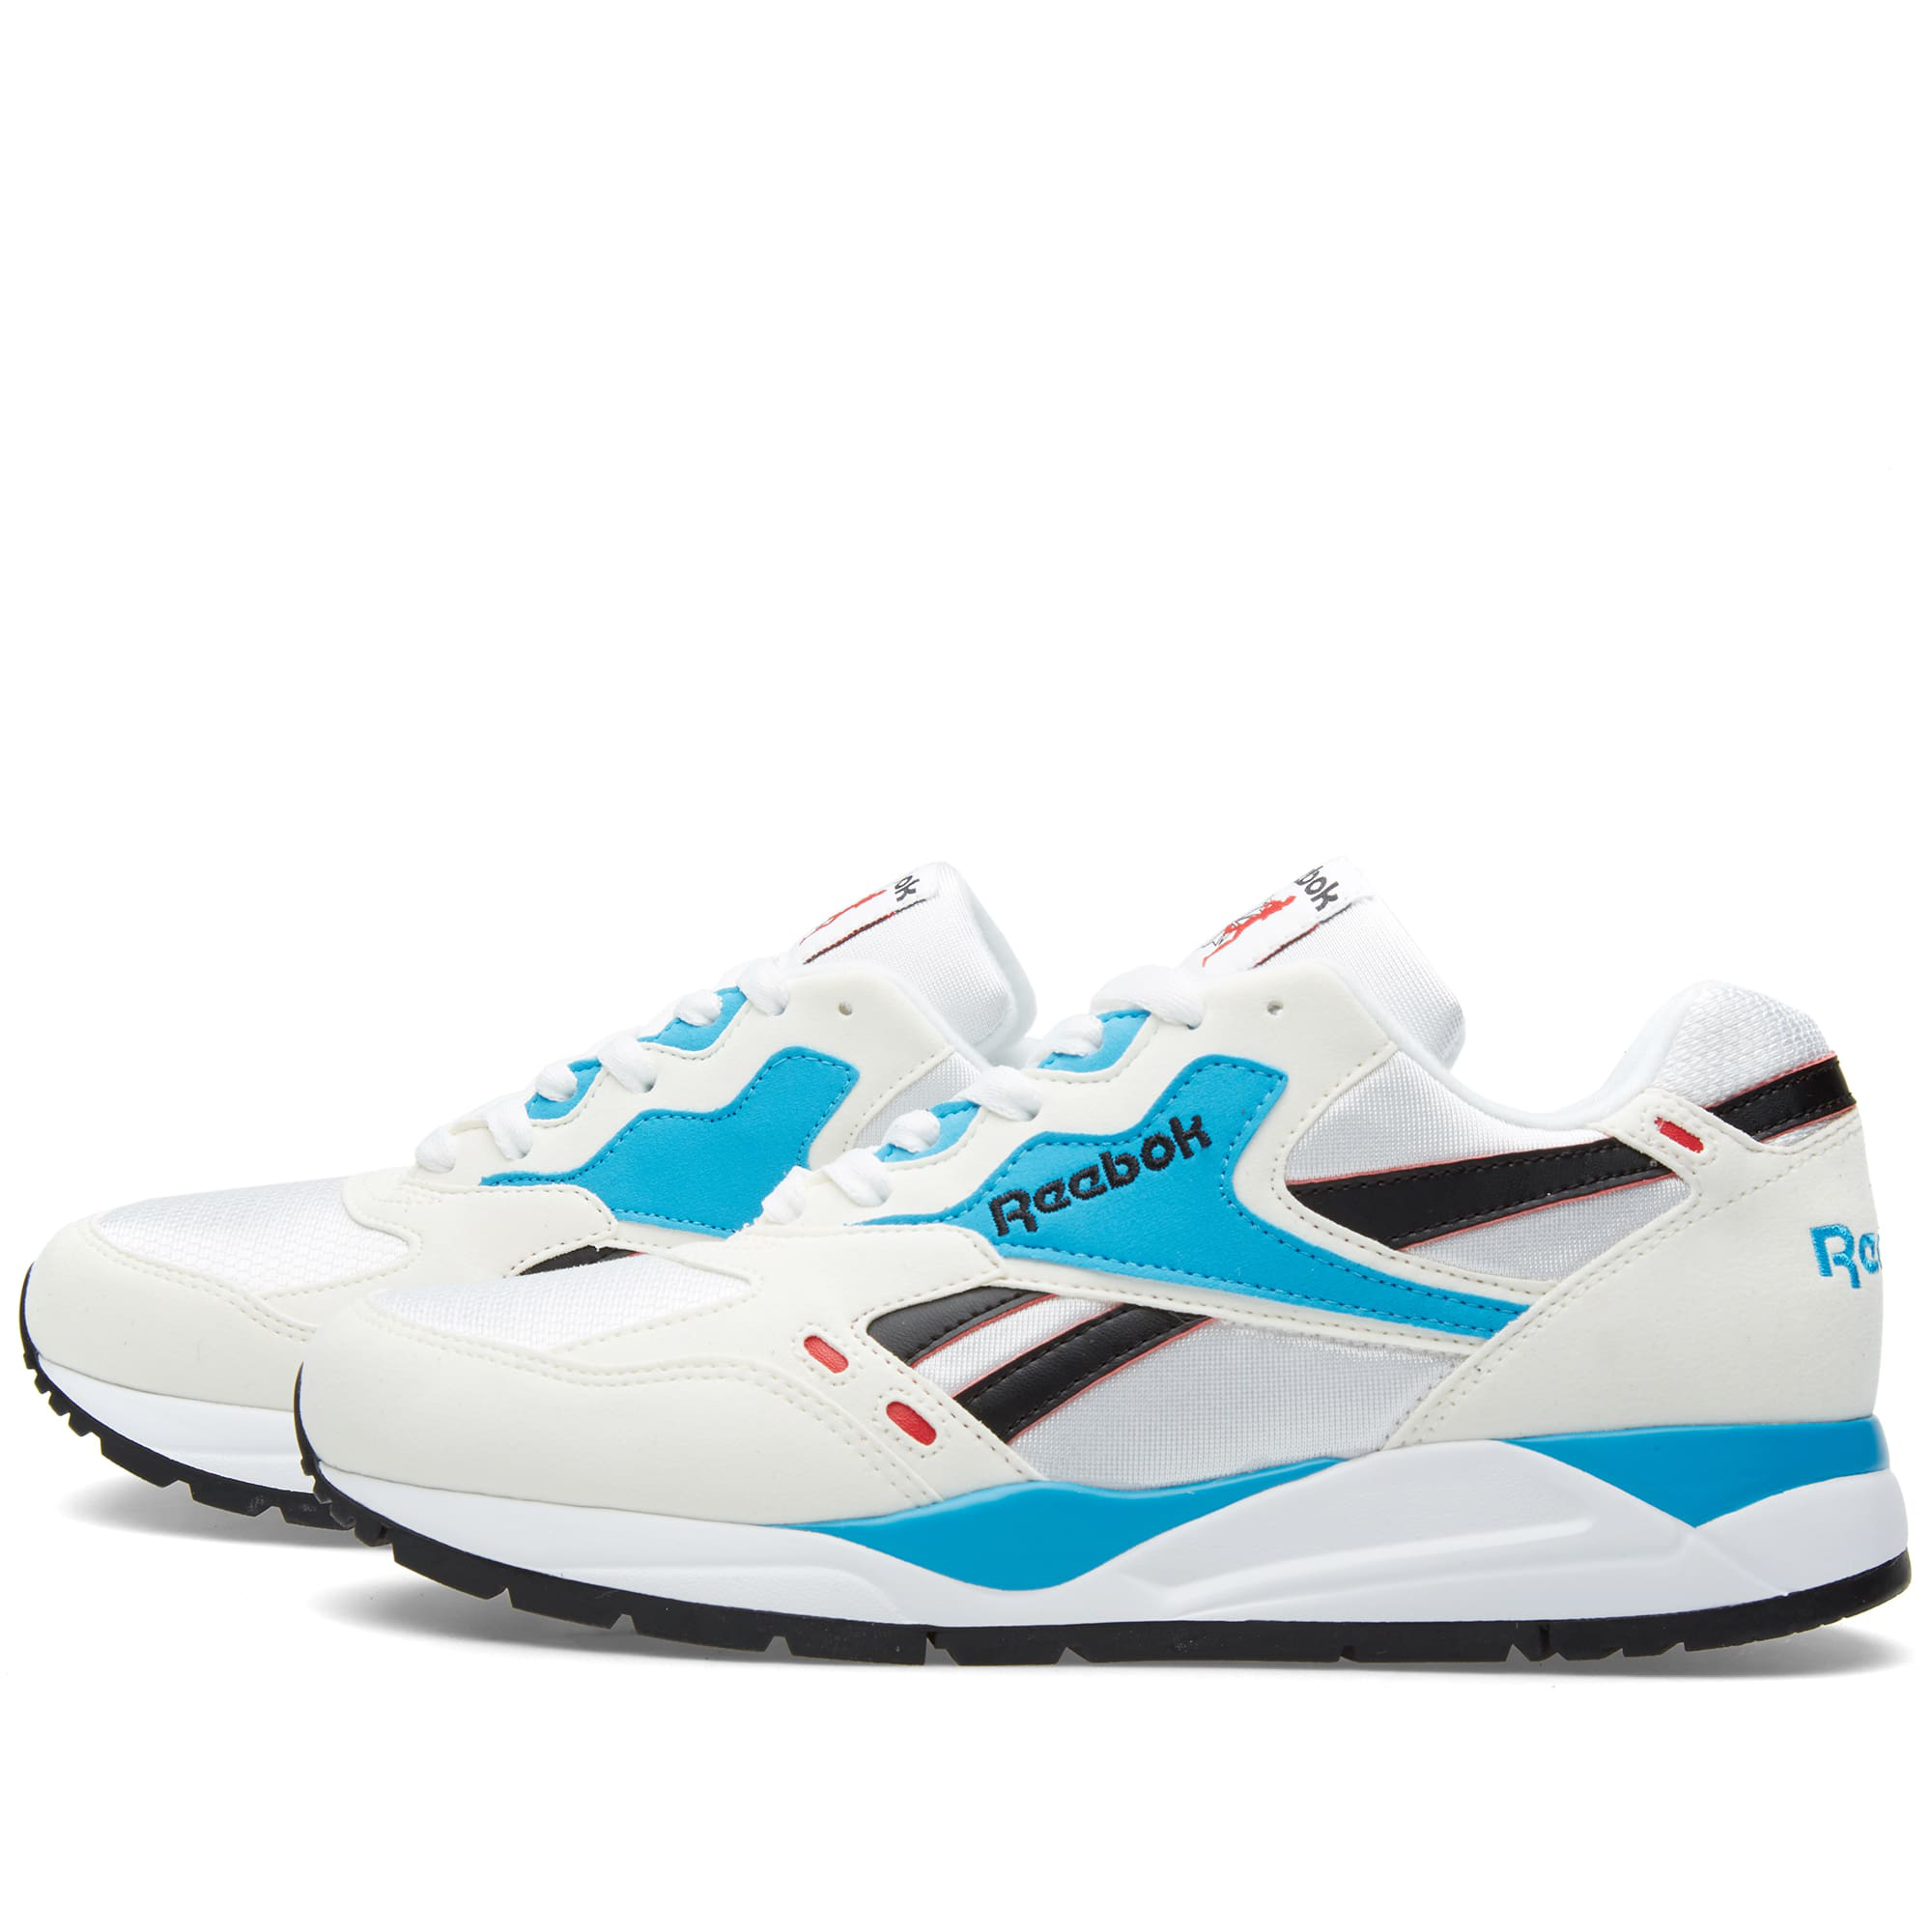 182cddaeed4 Reebok Chalk White Bolton Multi-Panel Chunky Sneakers - Farfetch In White  Blue